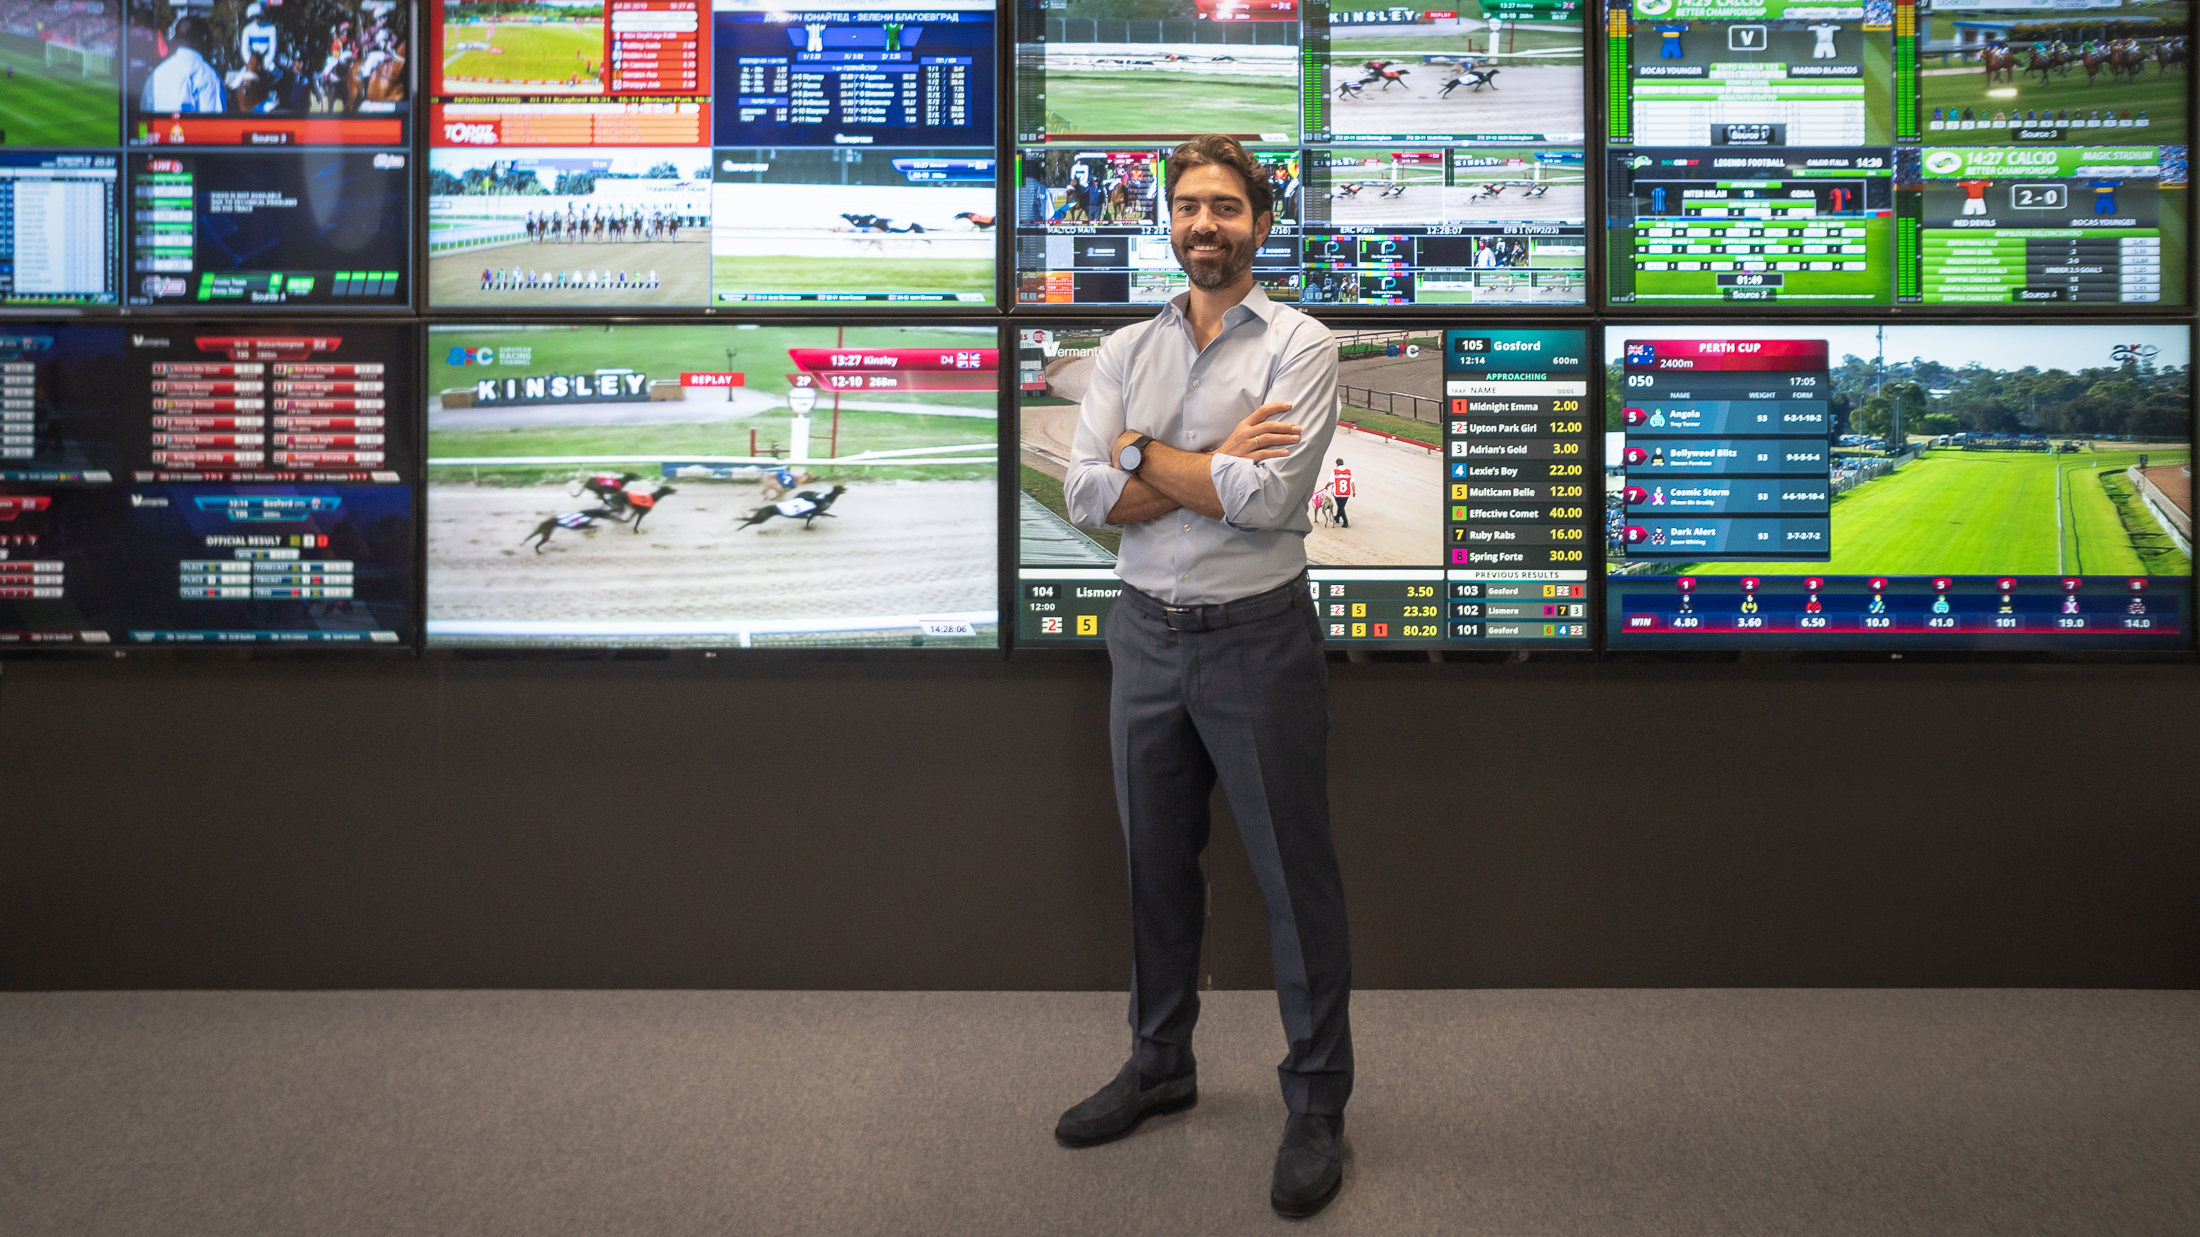 Sweet streams: How sports betting can capitalise on the rise of OTT broadcasts